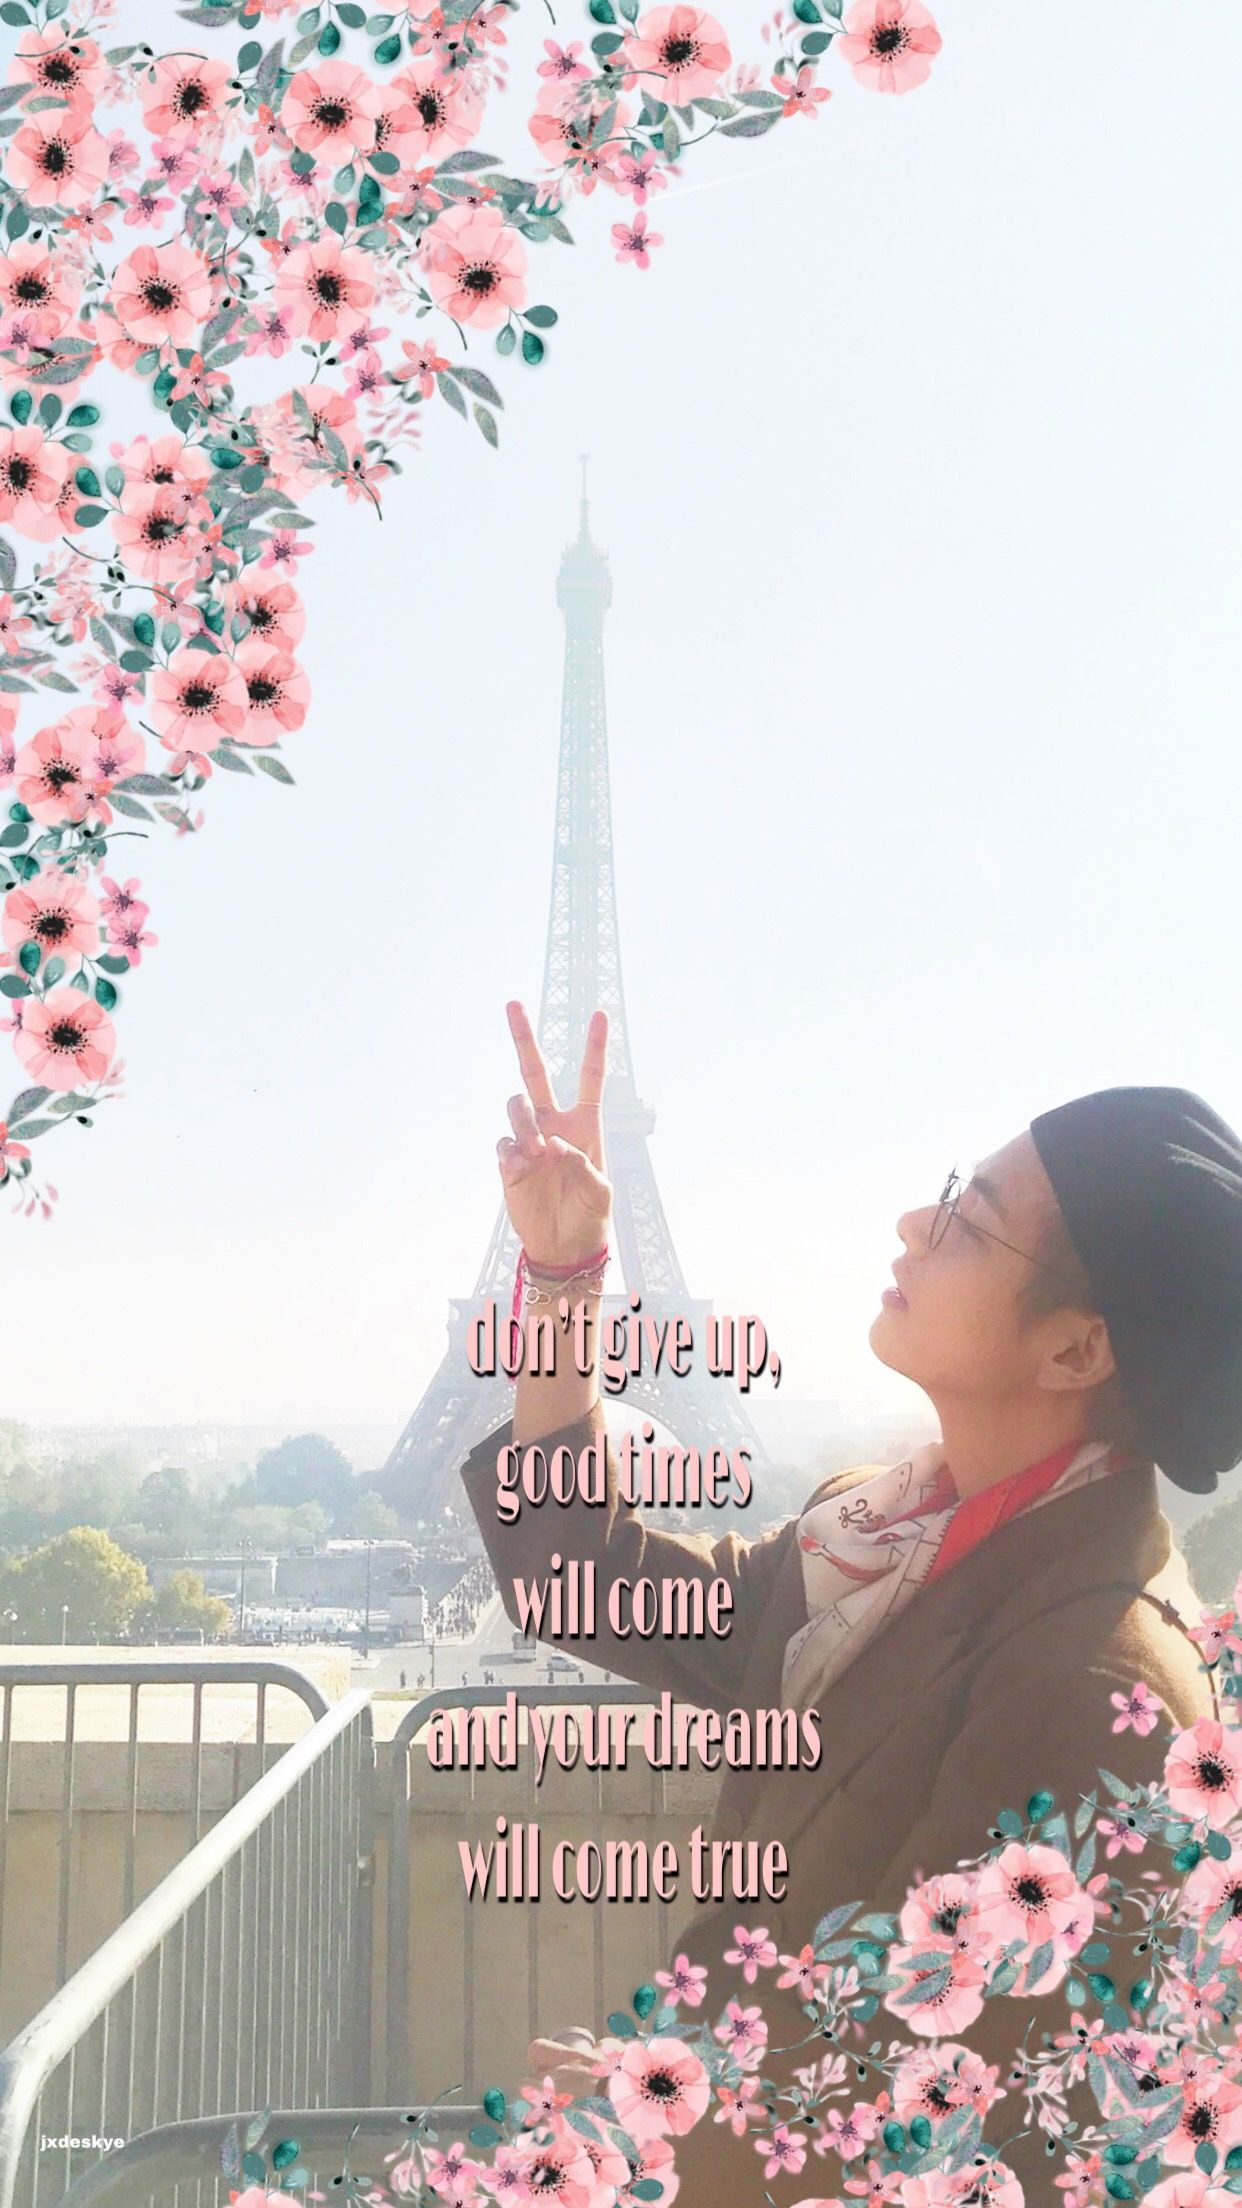 Bts Kim Taehyung Wallpaper Aesthetic Quotes Flowers V Wallpapers